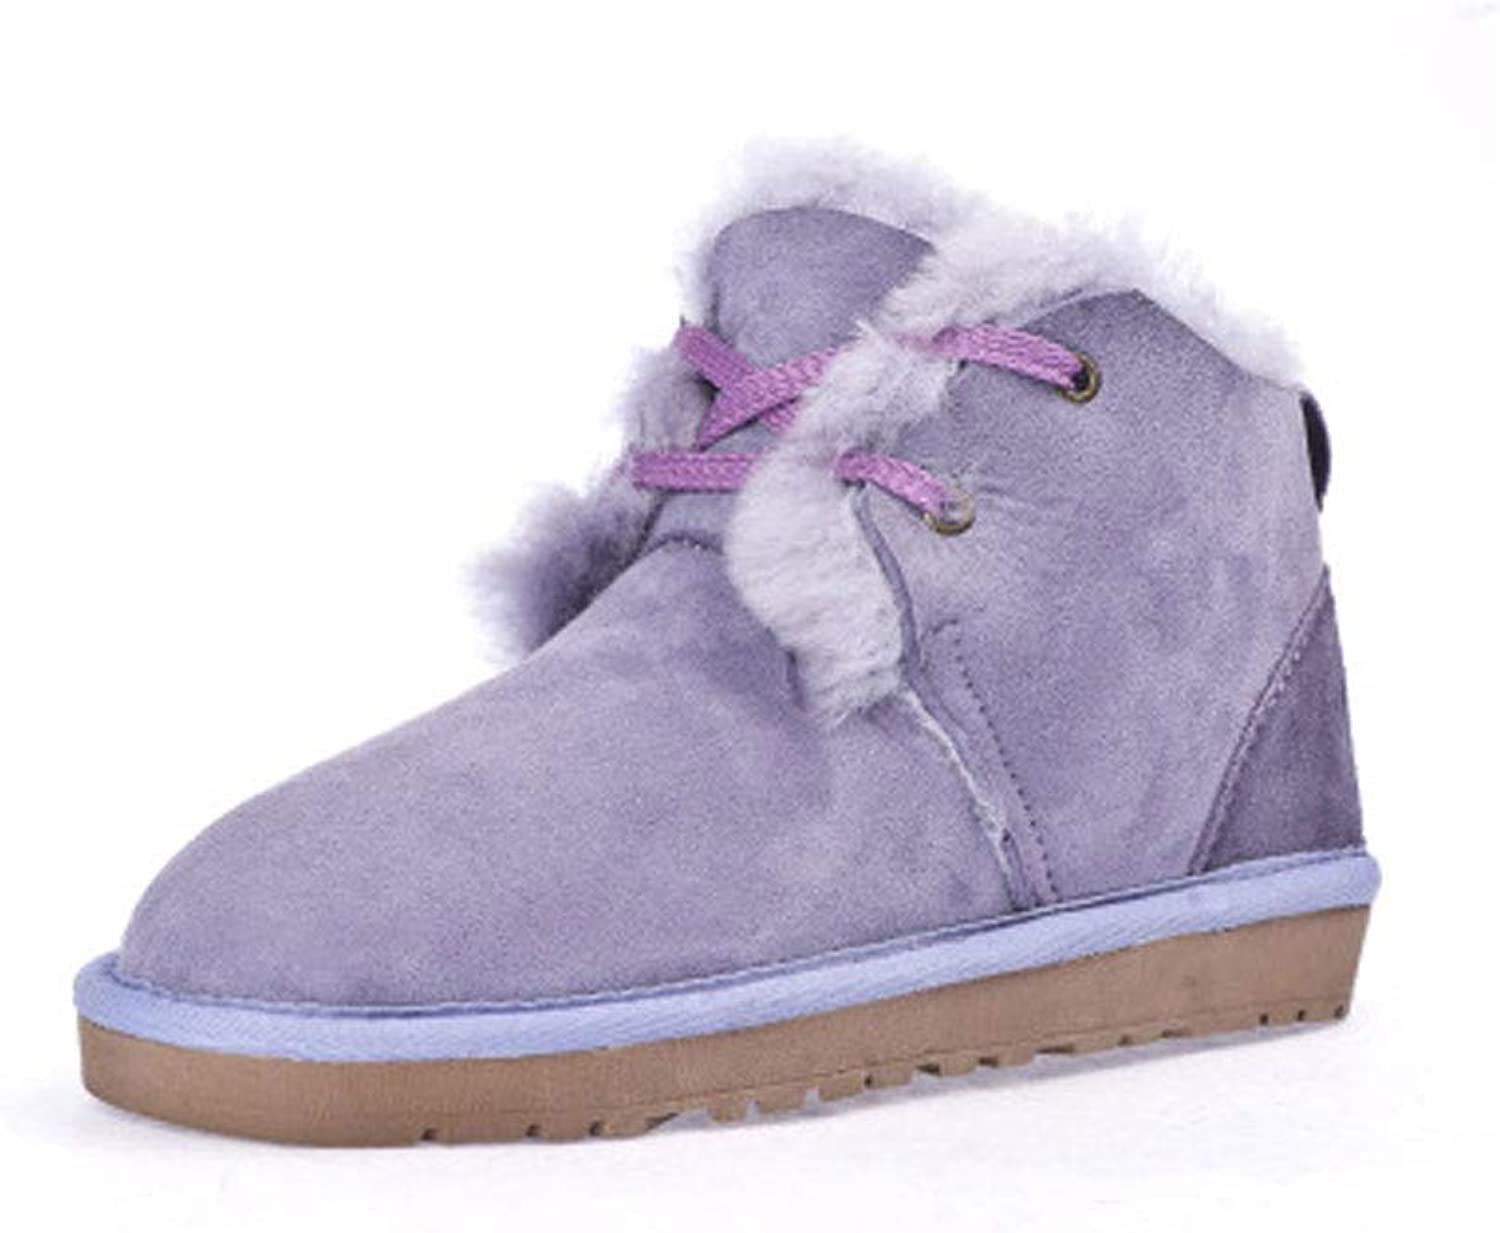 Ailj Snow Boots, Ladies Outdoor Leather Fluff One Booties Non-Slip Warm Boots Winter Cotton Boots (3 colors) (color   Purple, Size   35 EU 4 US 3 UK 22)